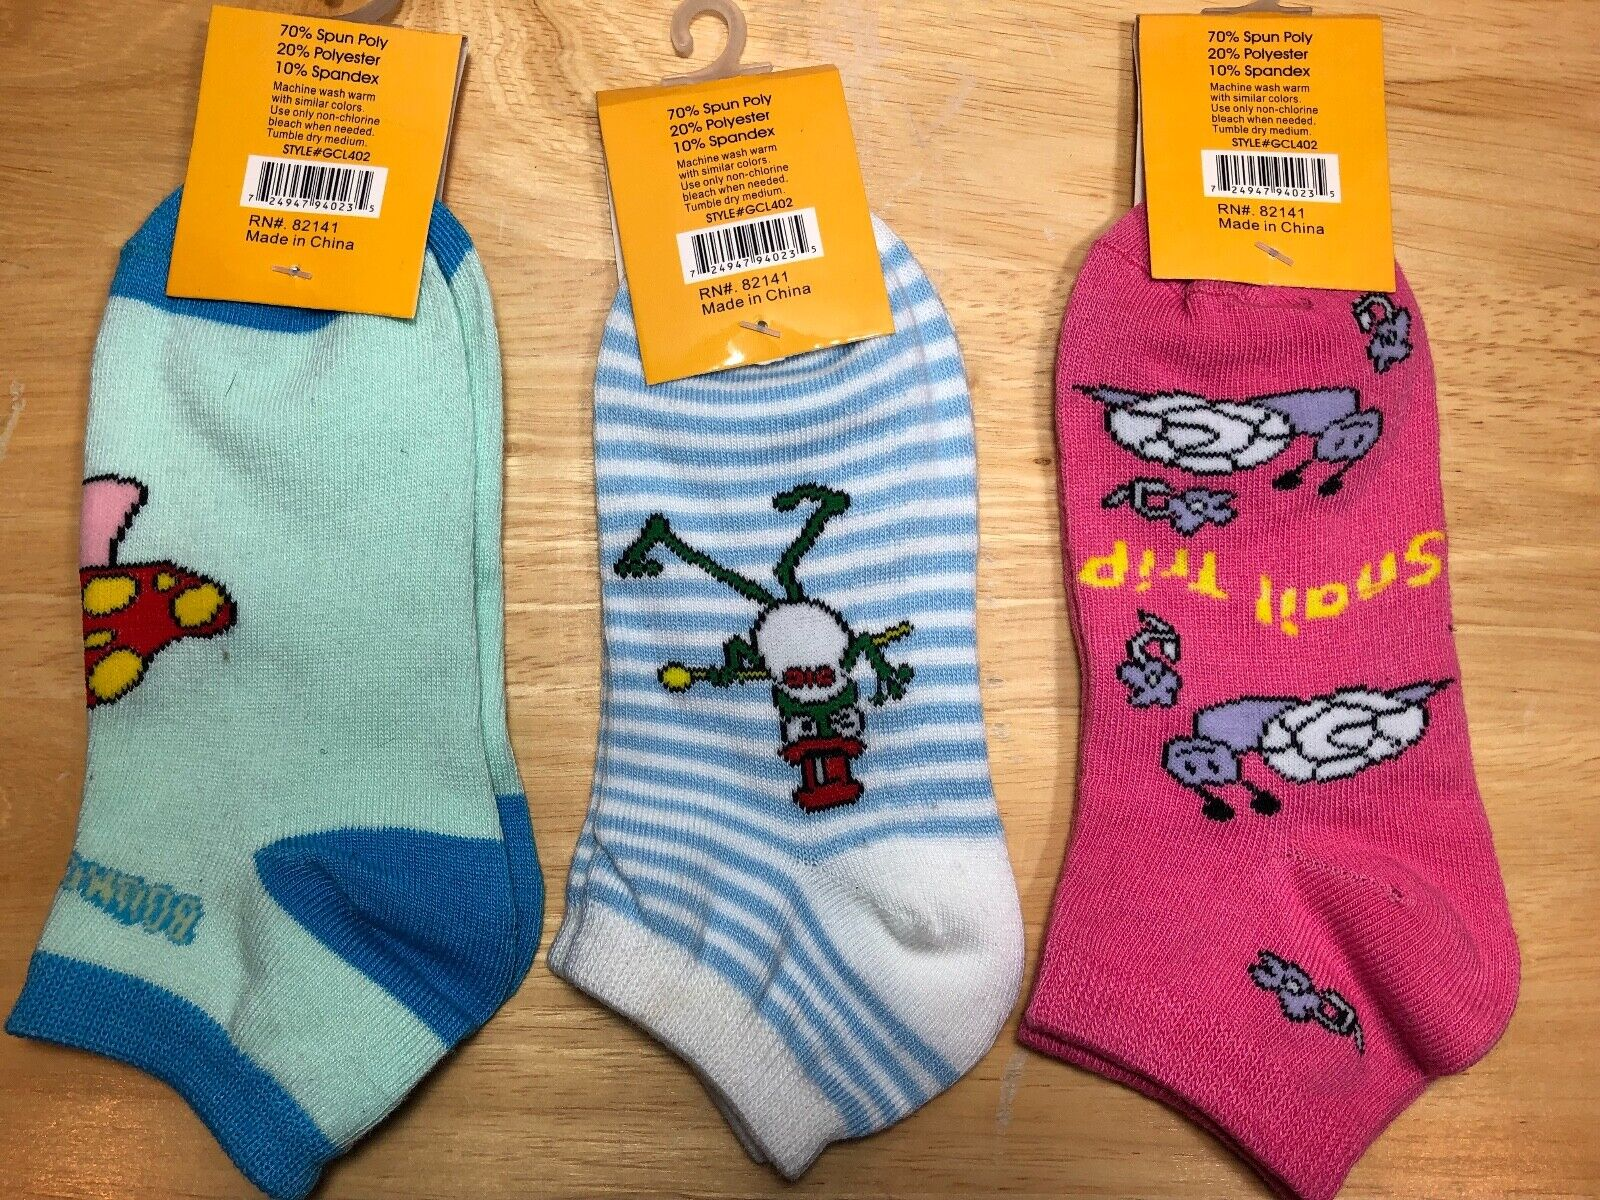 Brand New 3 pair pack Griffin Women's Collection printed socks size 9-11 Clothing, Shoes & Accessories